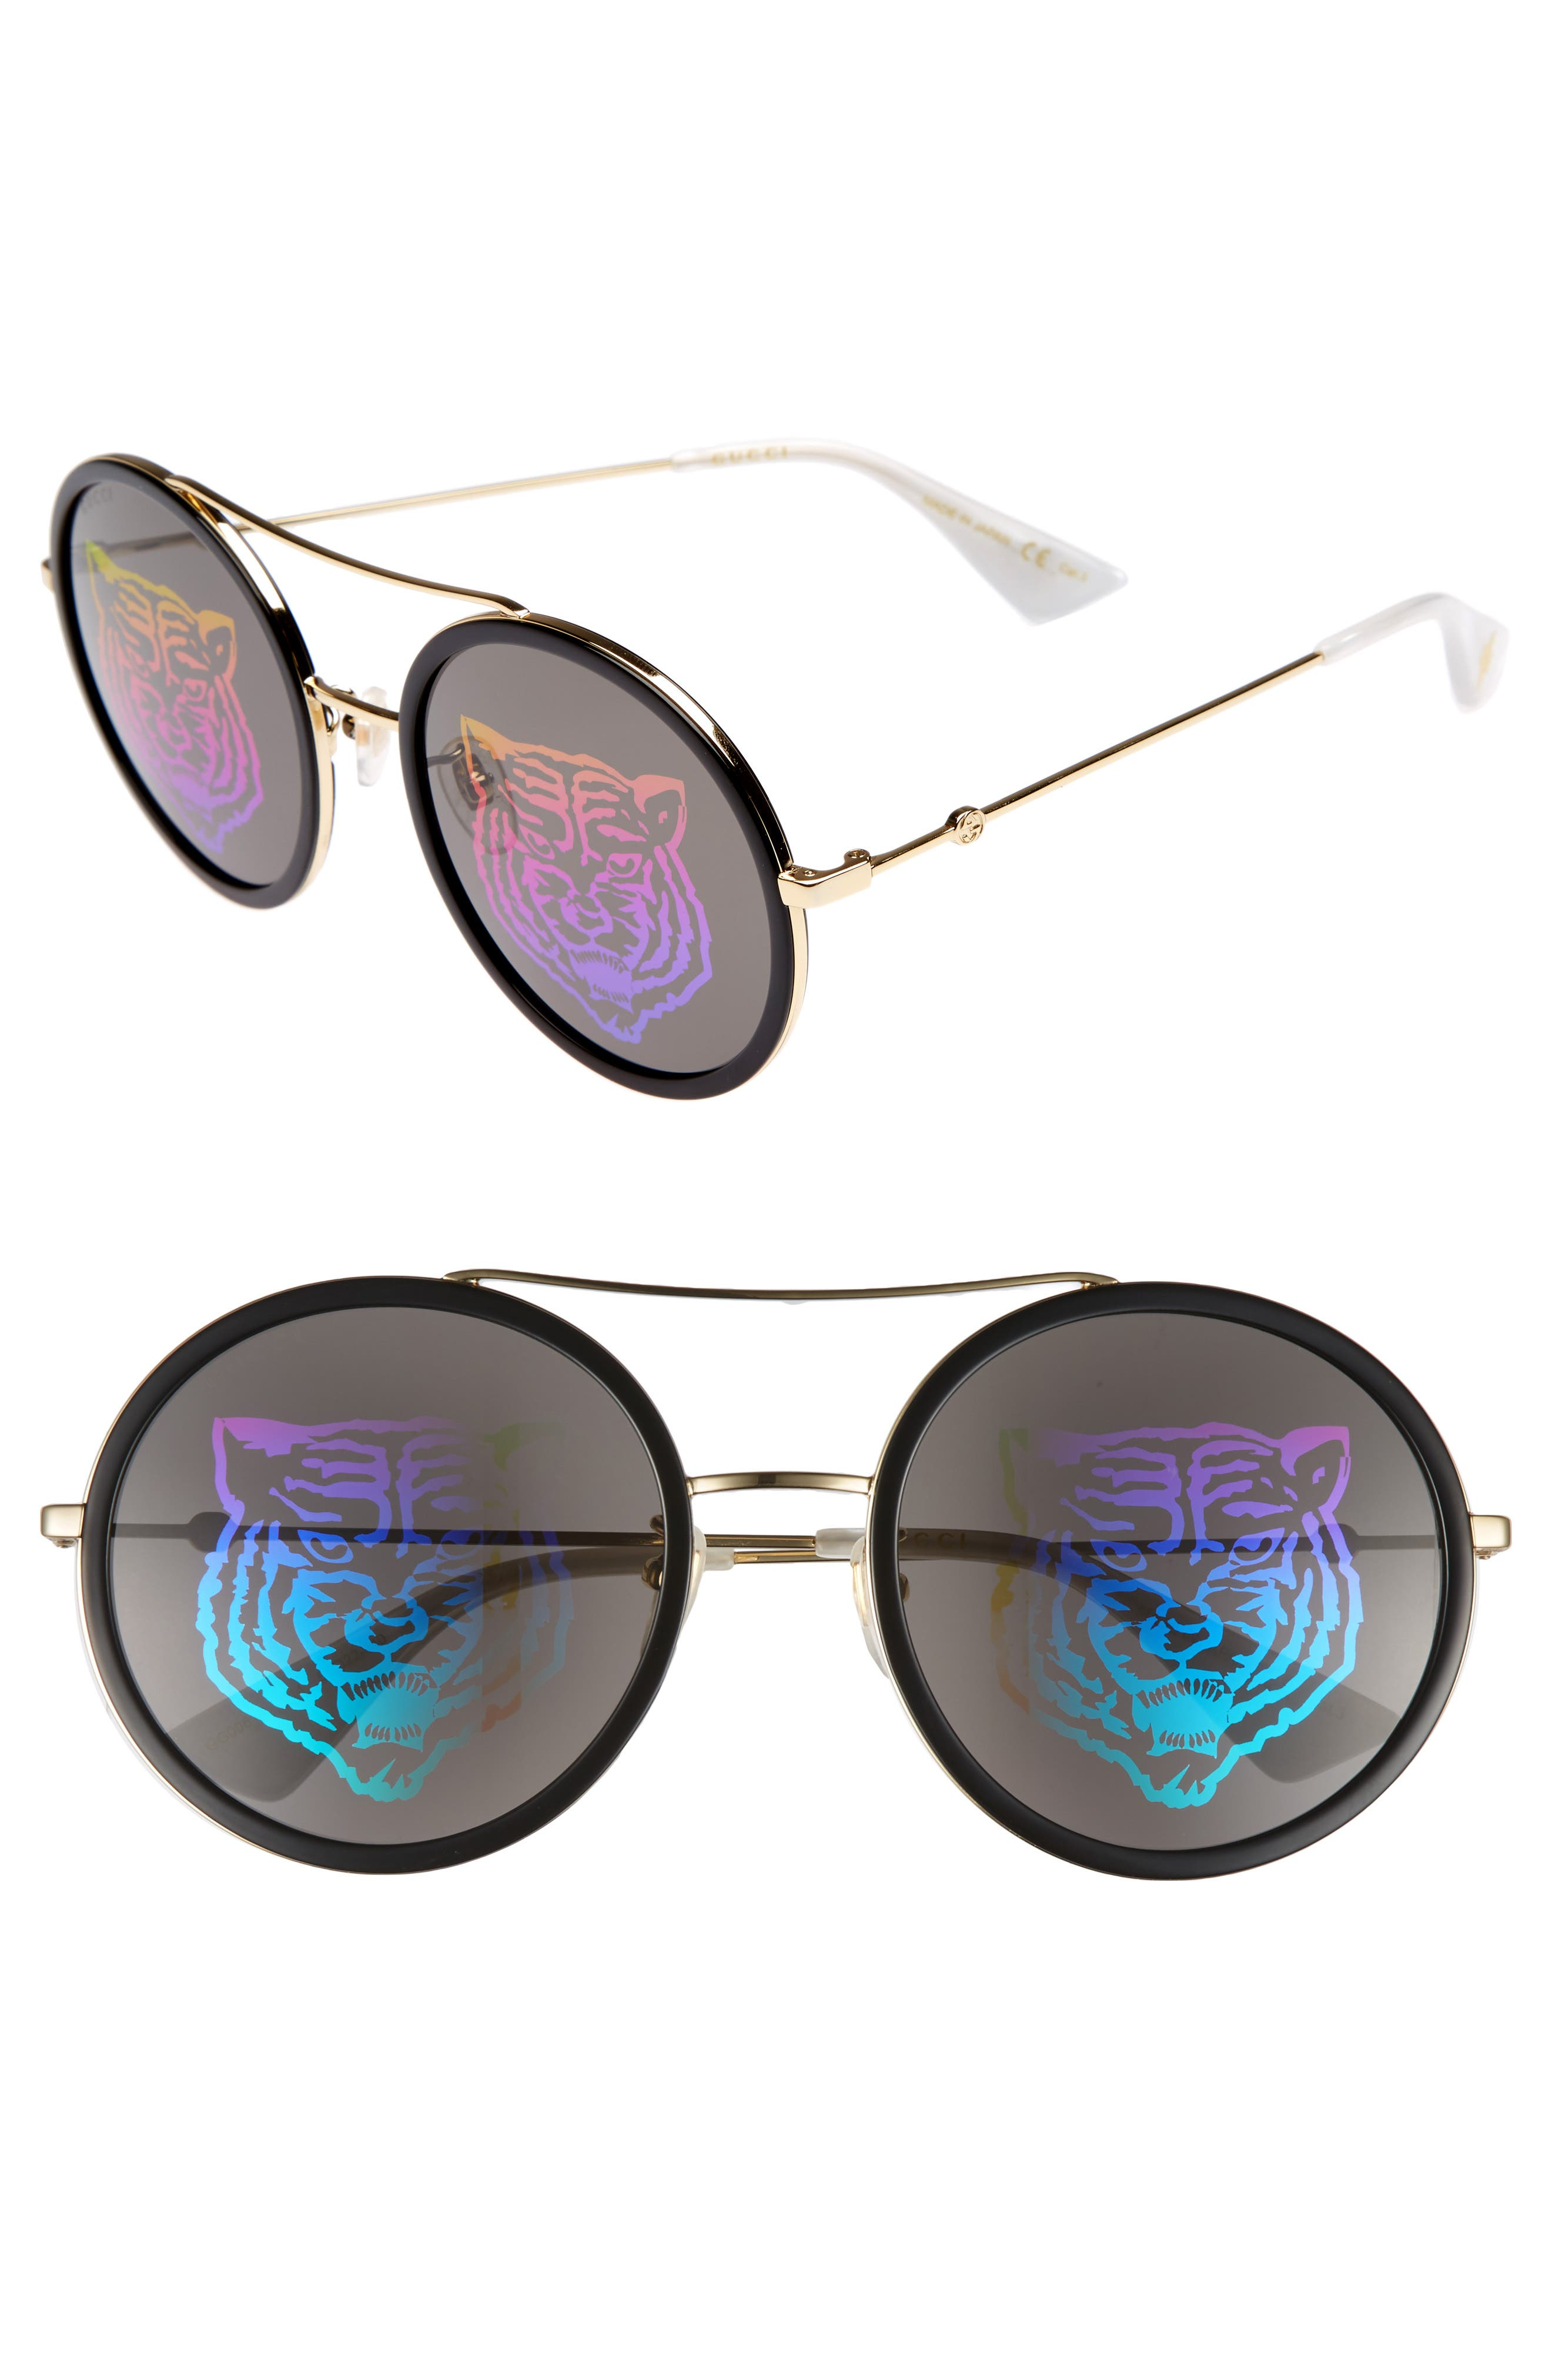 56mm Round Mirrored Aviator Sunglasses,                             Main thumbnail 1, color,                             GOLD/ TIGER